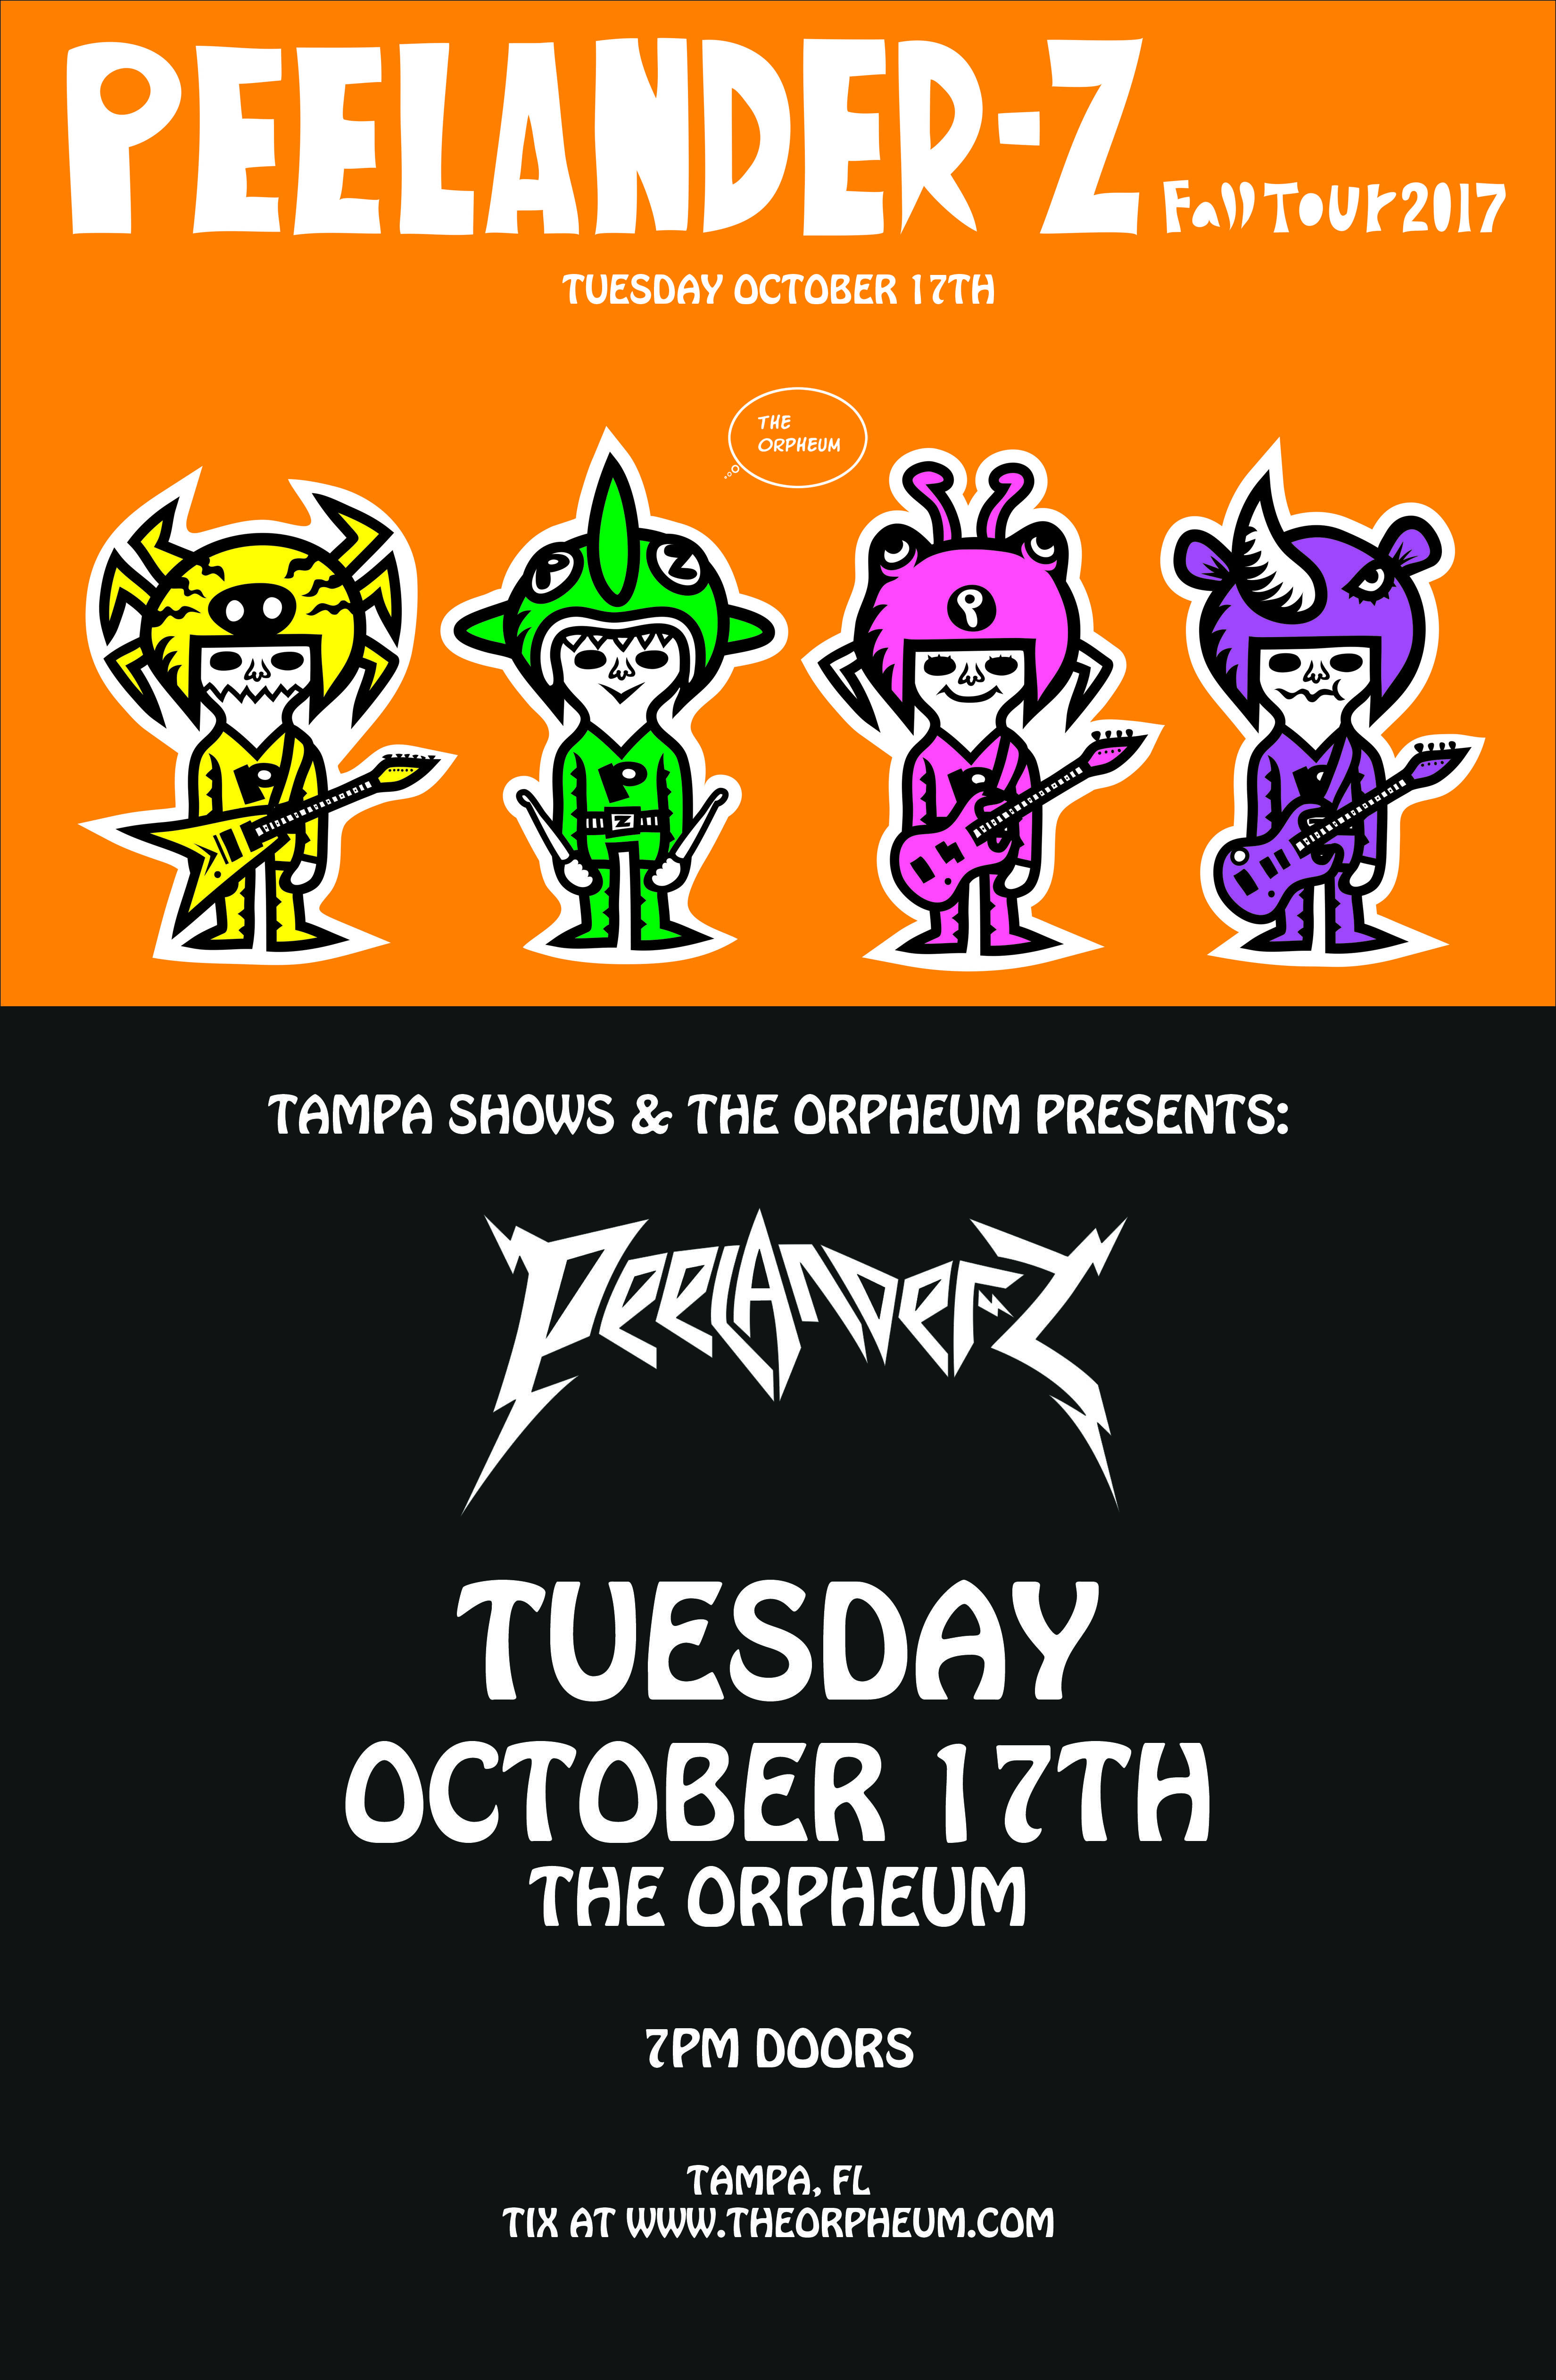 Hip hop radio stations in tampa fl - Peelander Z The Orpheum